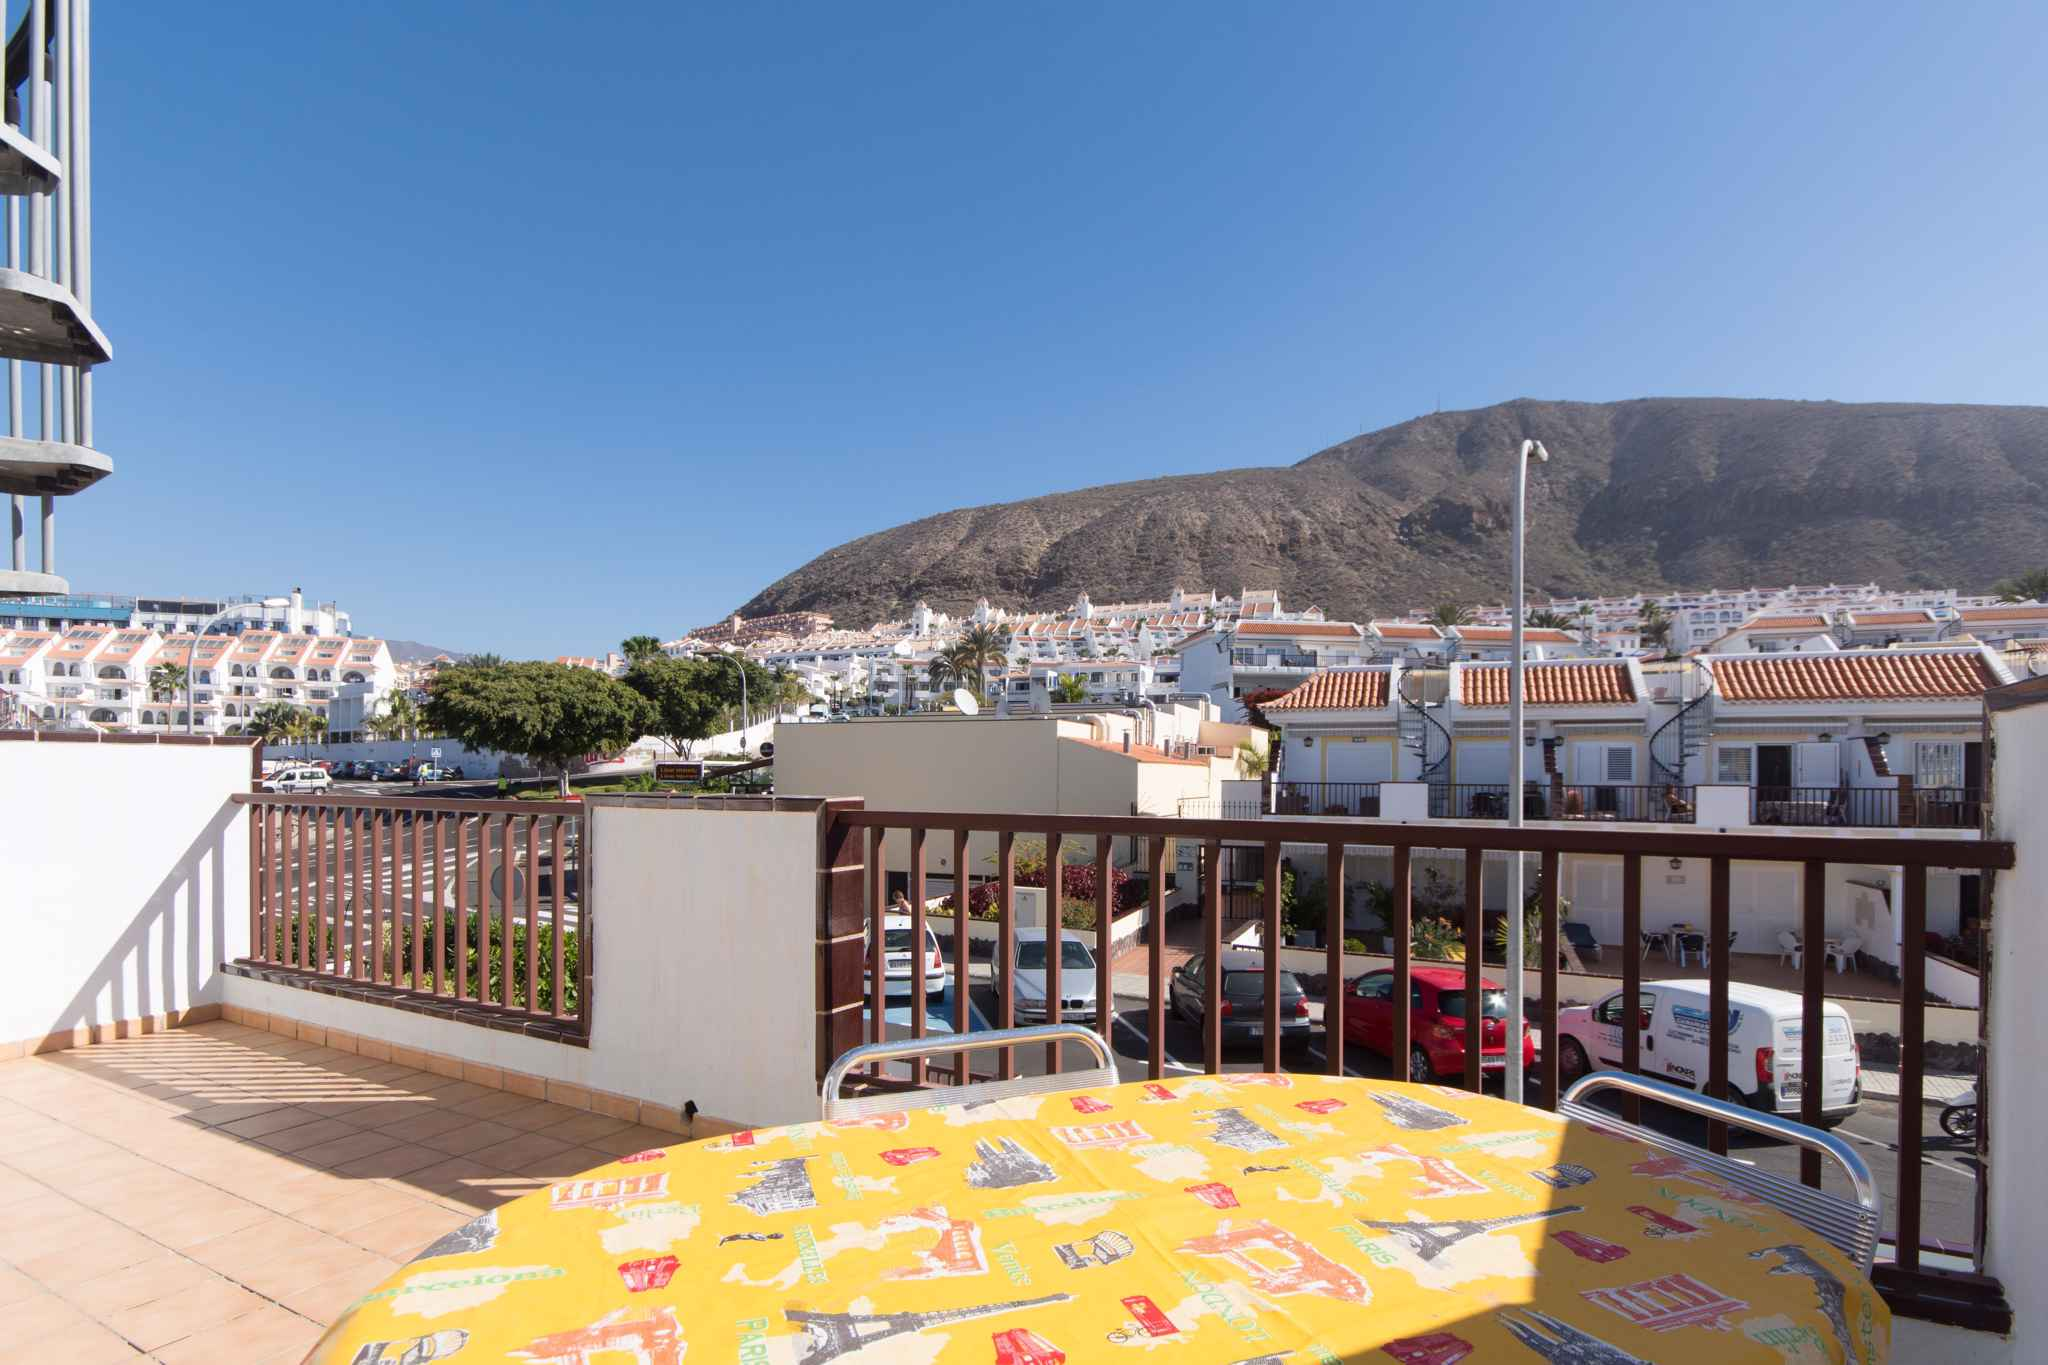 Holiday apartment mit Pool in Ferienanlage (2382979), Los Cristianos, Tenerife, Canary Islands, Spain, picture 3